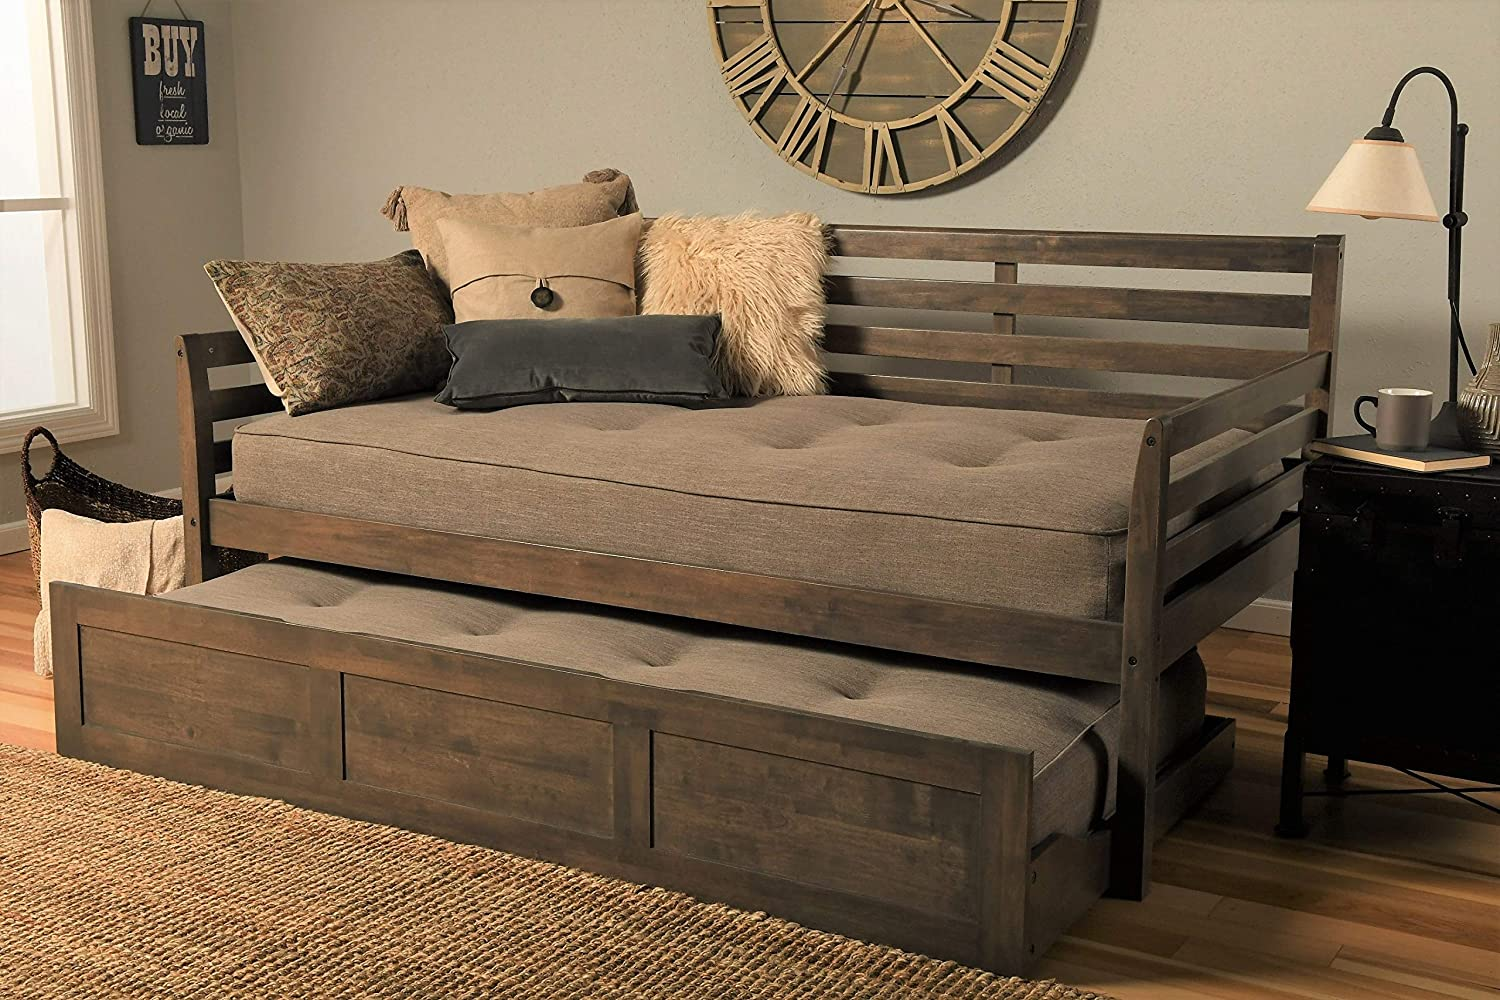 Kodiak Furniture Boho Daybed with Trundle, Twin, Rustic Walnut Finish